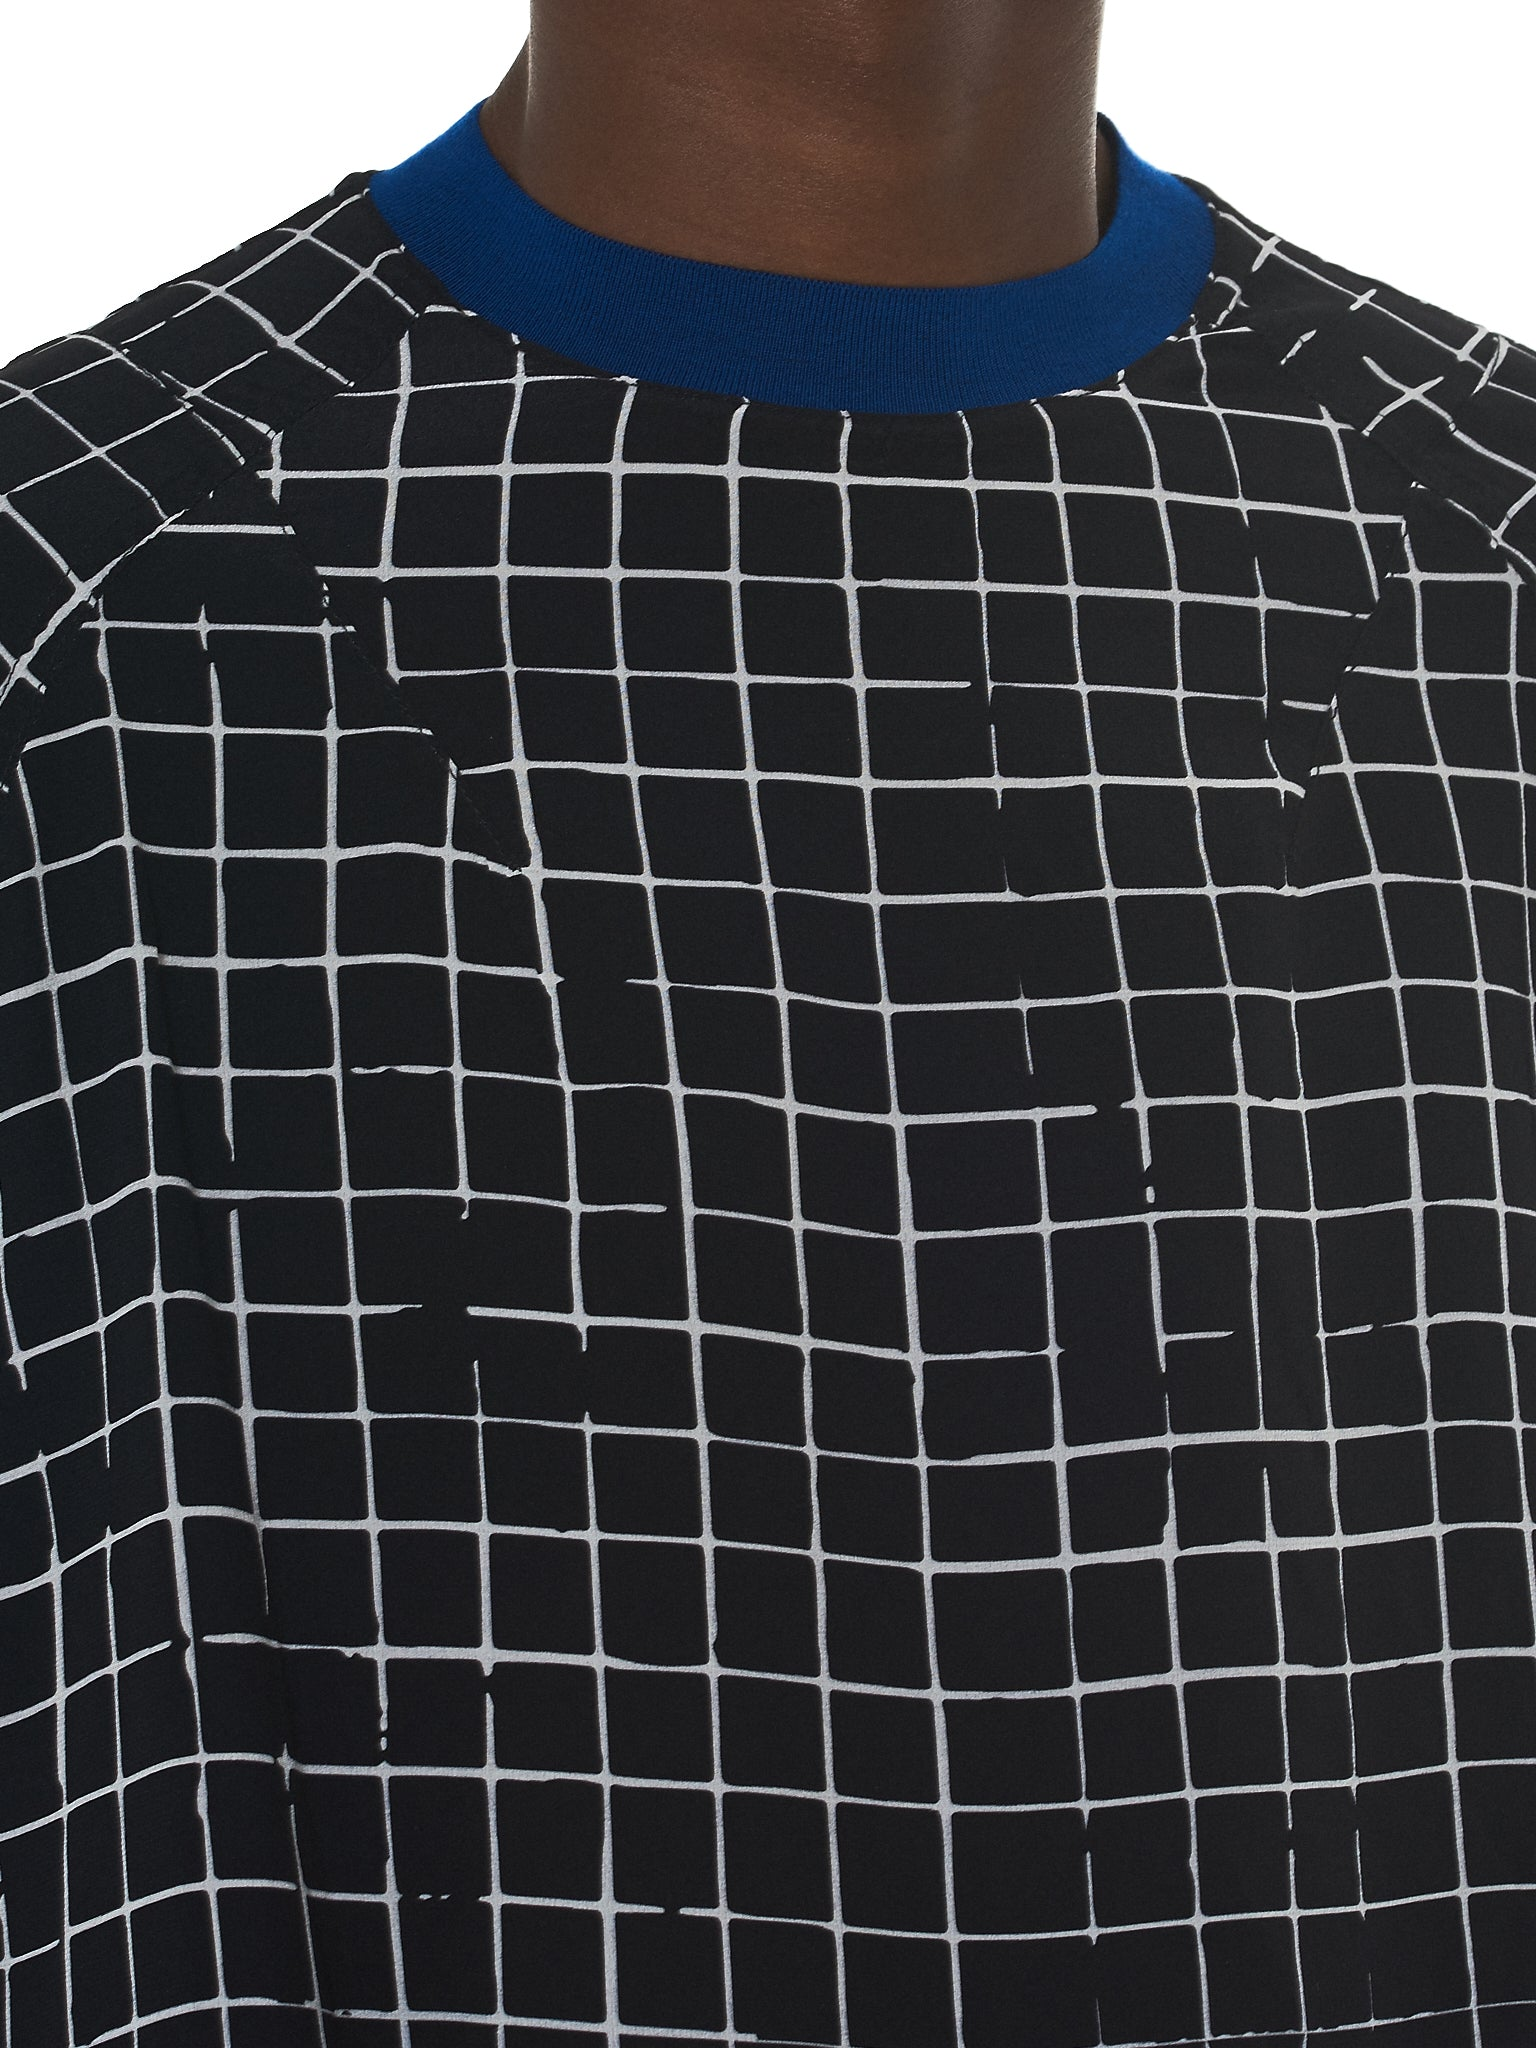 Haider Ackermann Grid Check Sweater - Hlorenzo Detail 2